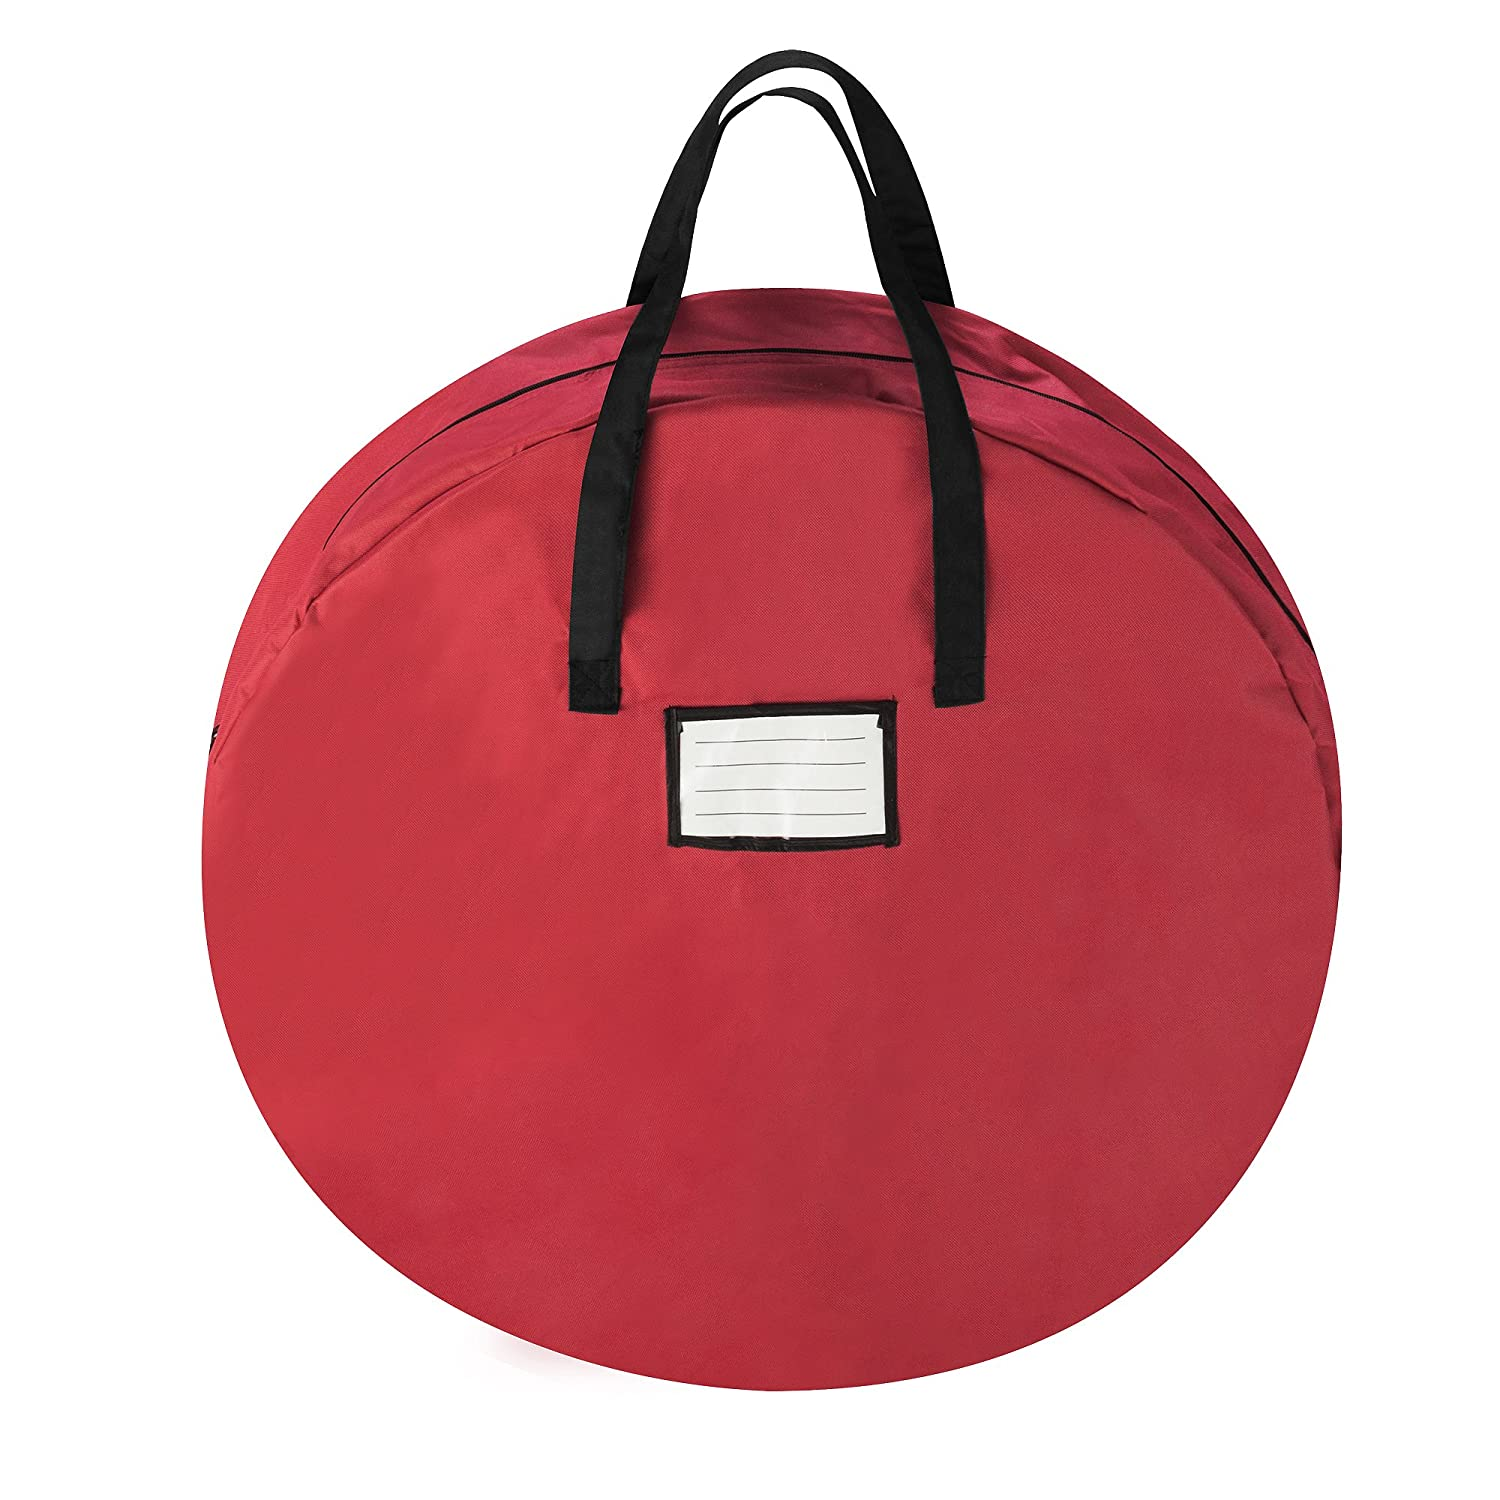 Tiny Tim Totes 5704 24 Canvas Red Artificial Wreath Storage Bag, 24 Inch 5704 24 In Wreath Canvas Red